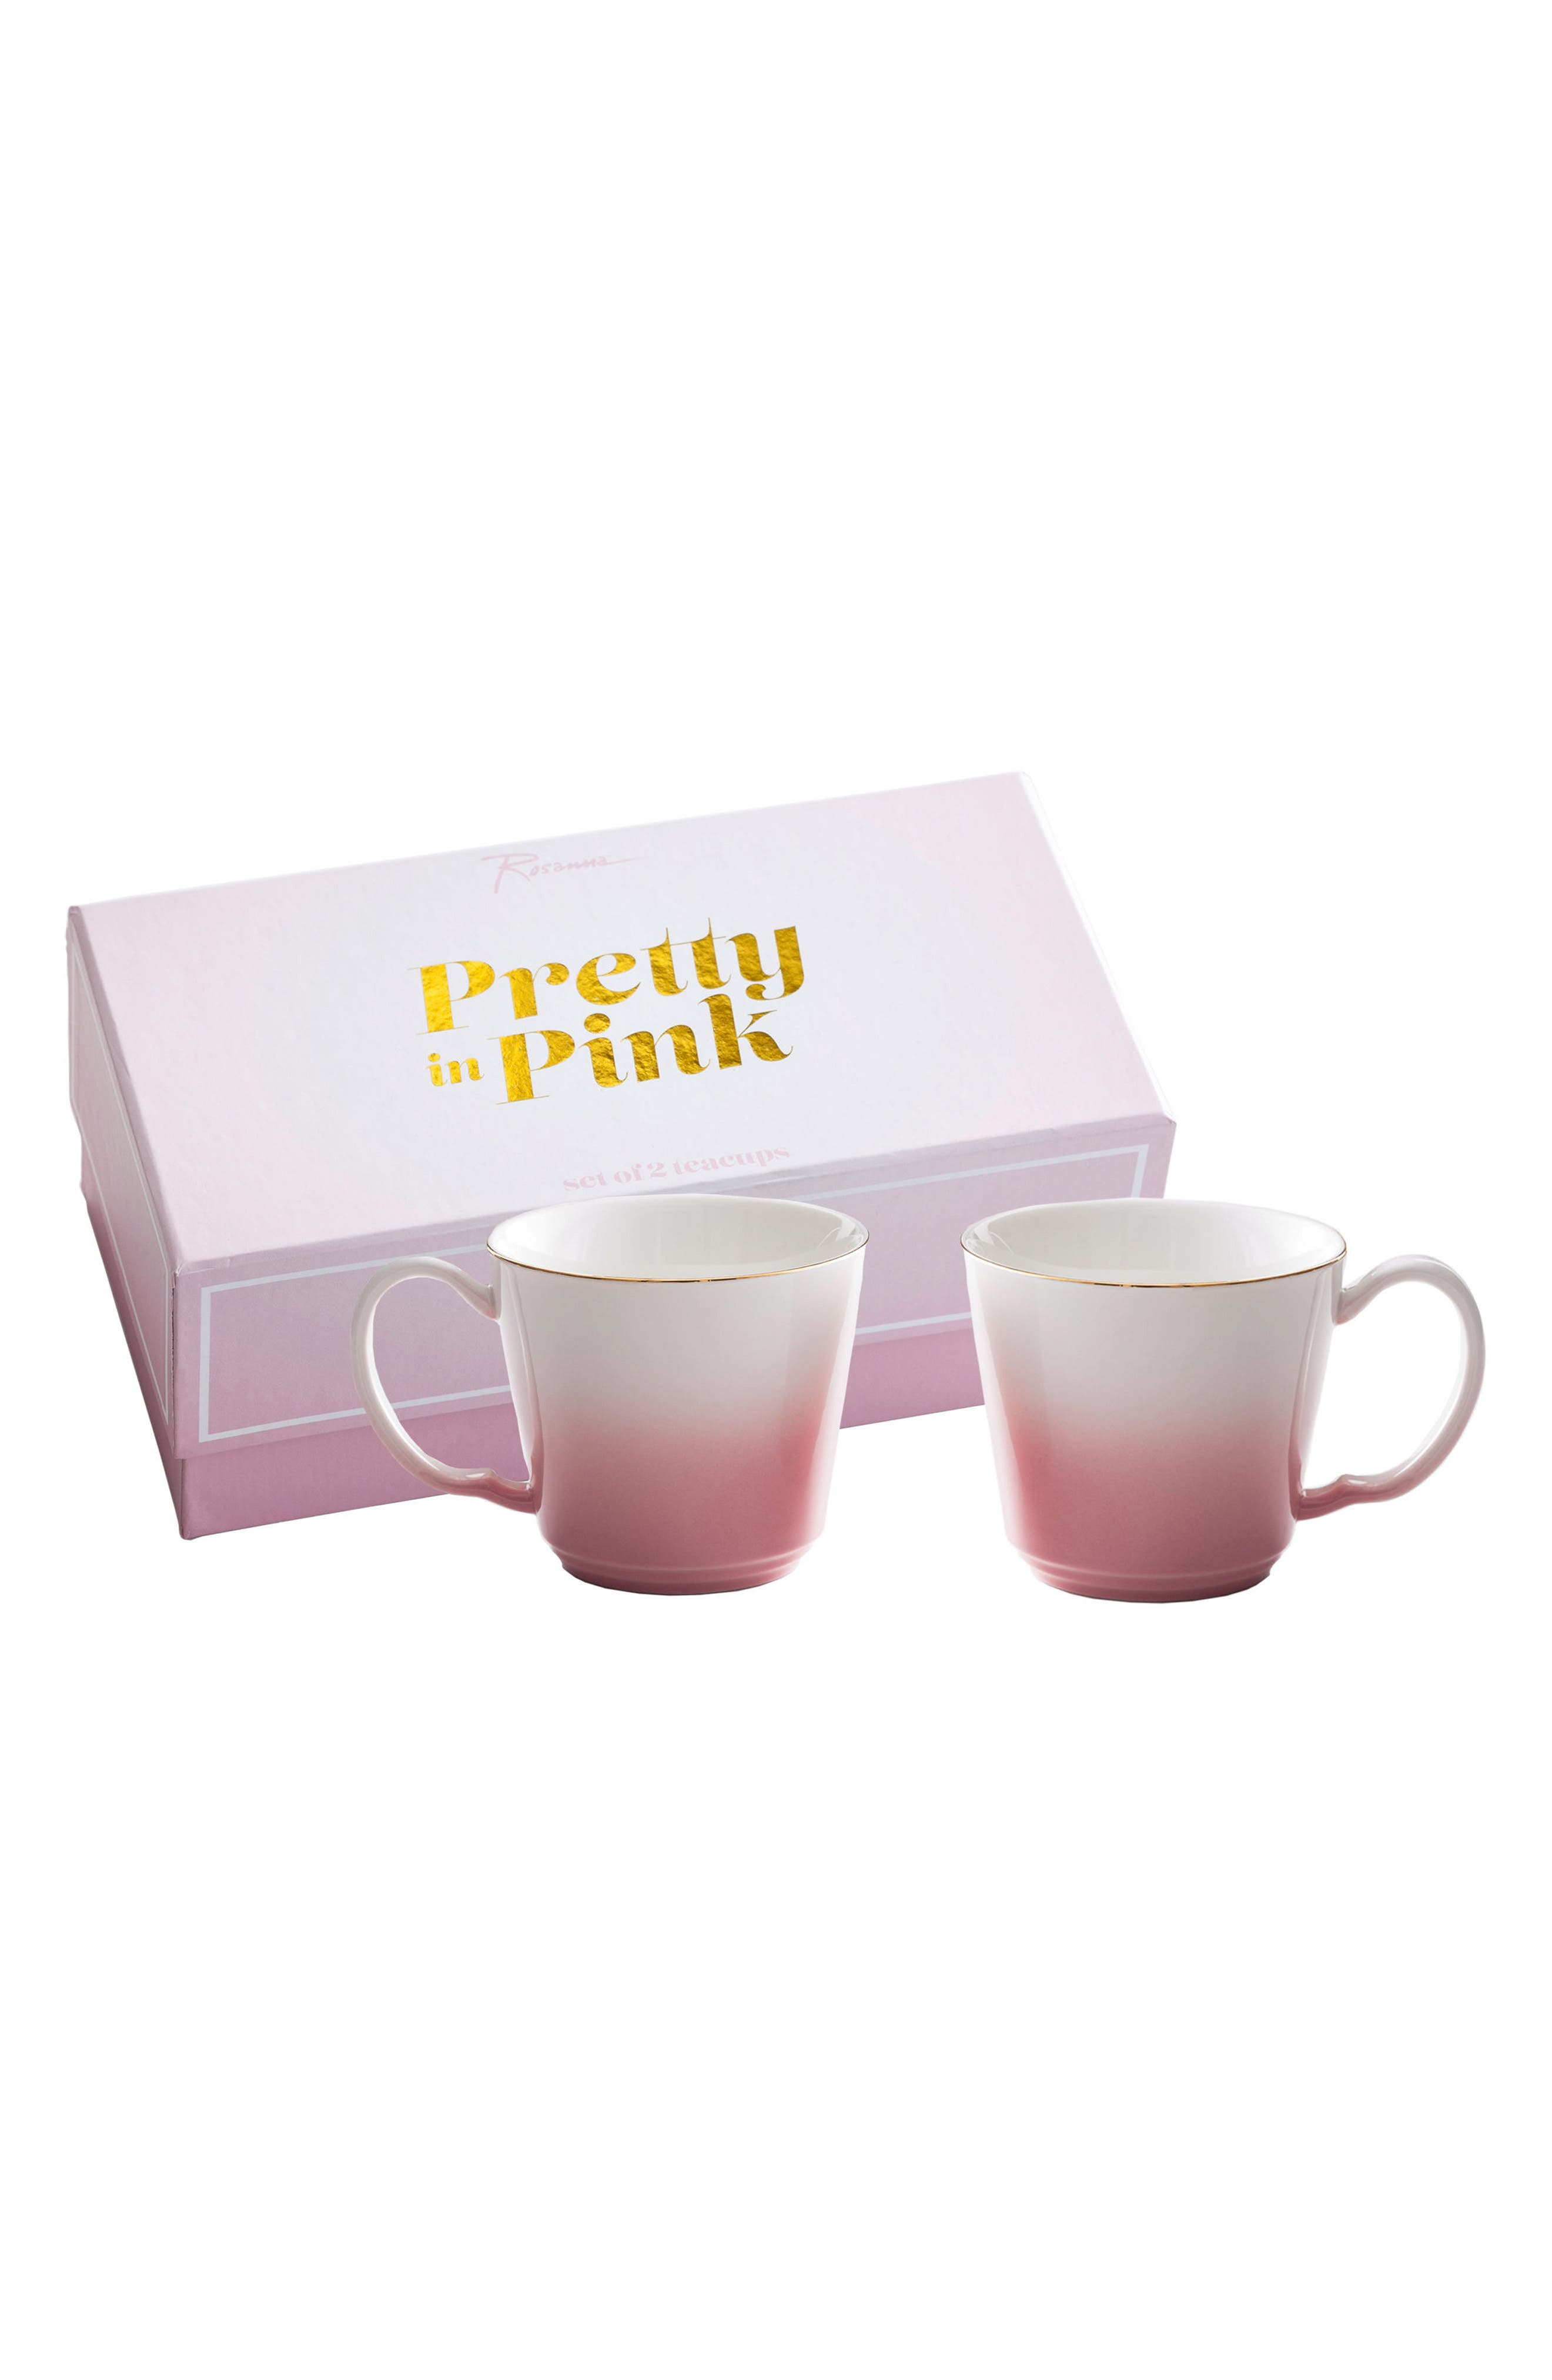 Pretty In Pink Set of 2 Porcelain Teacups,                             Main thumbnail 1, color,                             650